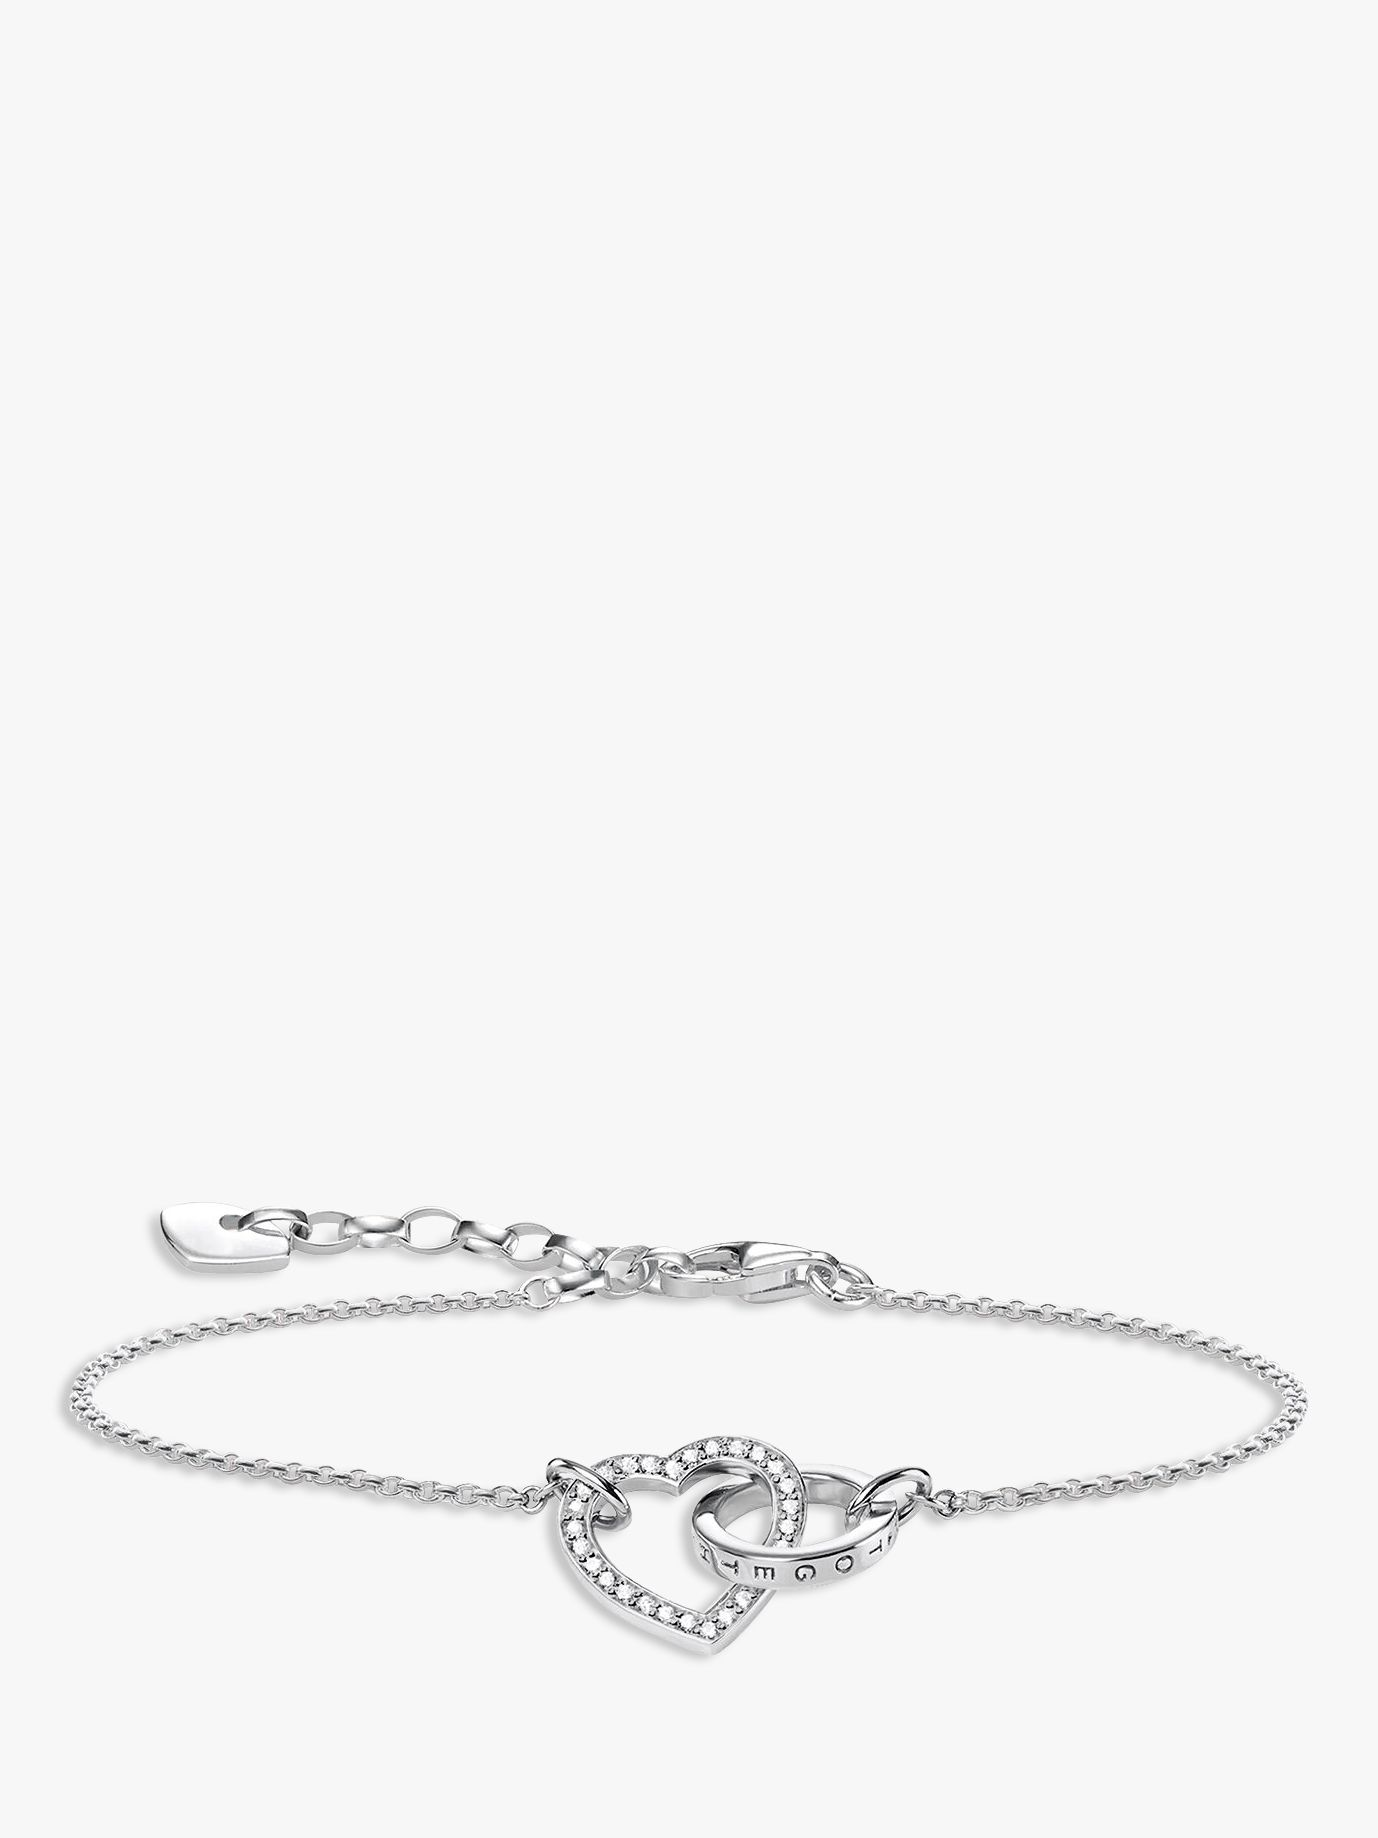 Thomas Sabo THOMAS SABO Glam & Soul Together Forever Cubic Zirconia Heart and Ring Chain Bracelet, Silver